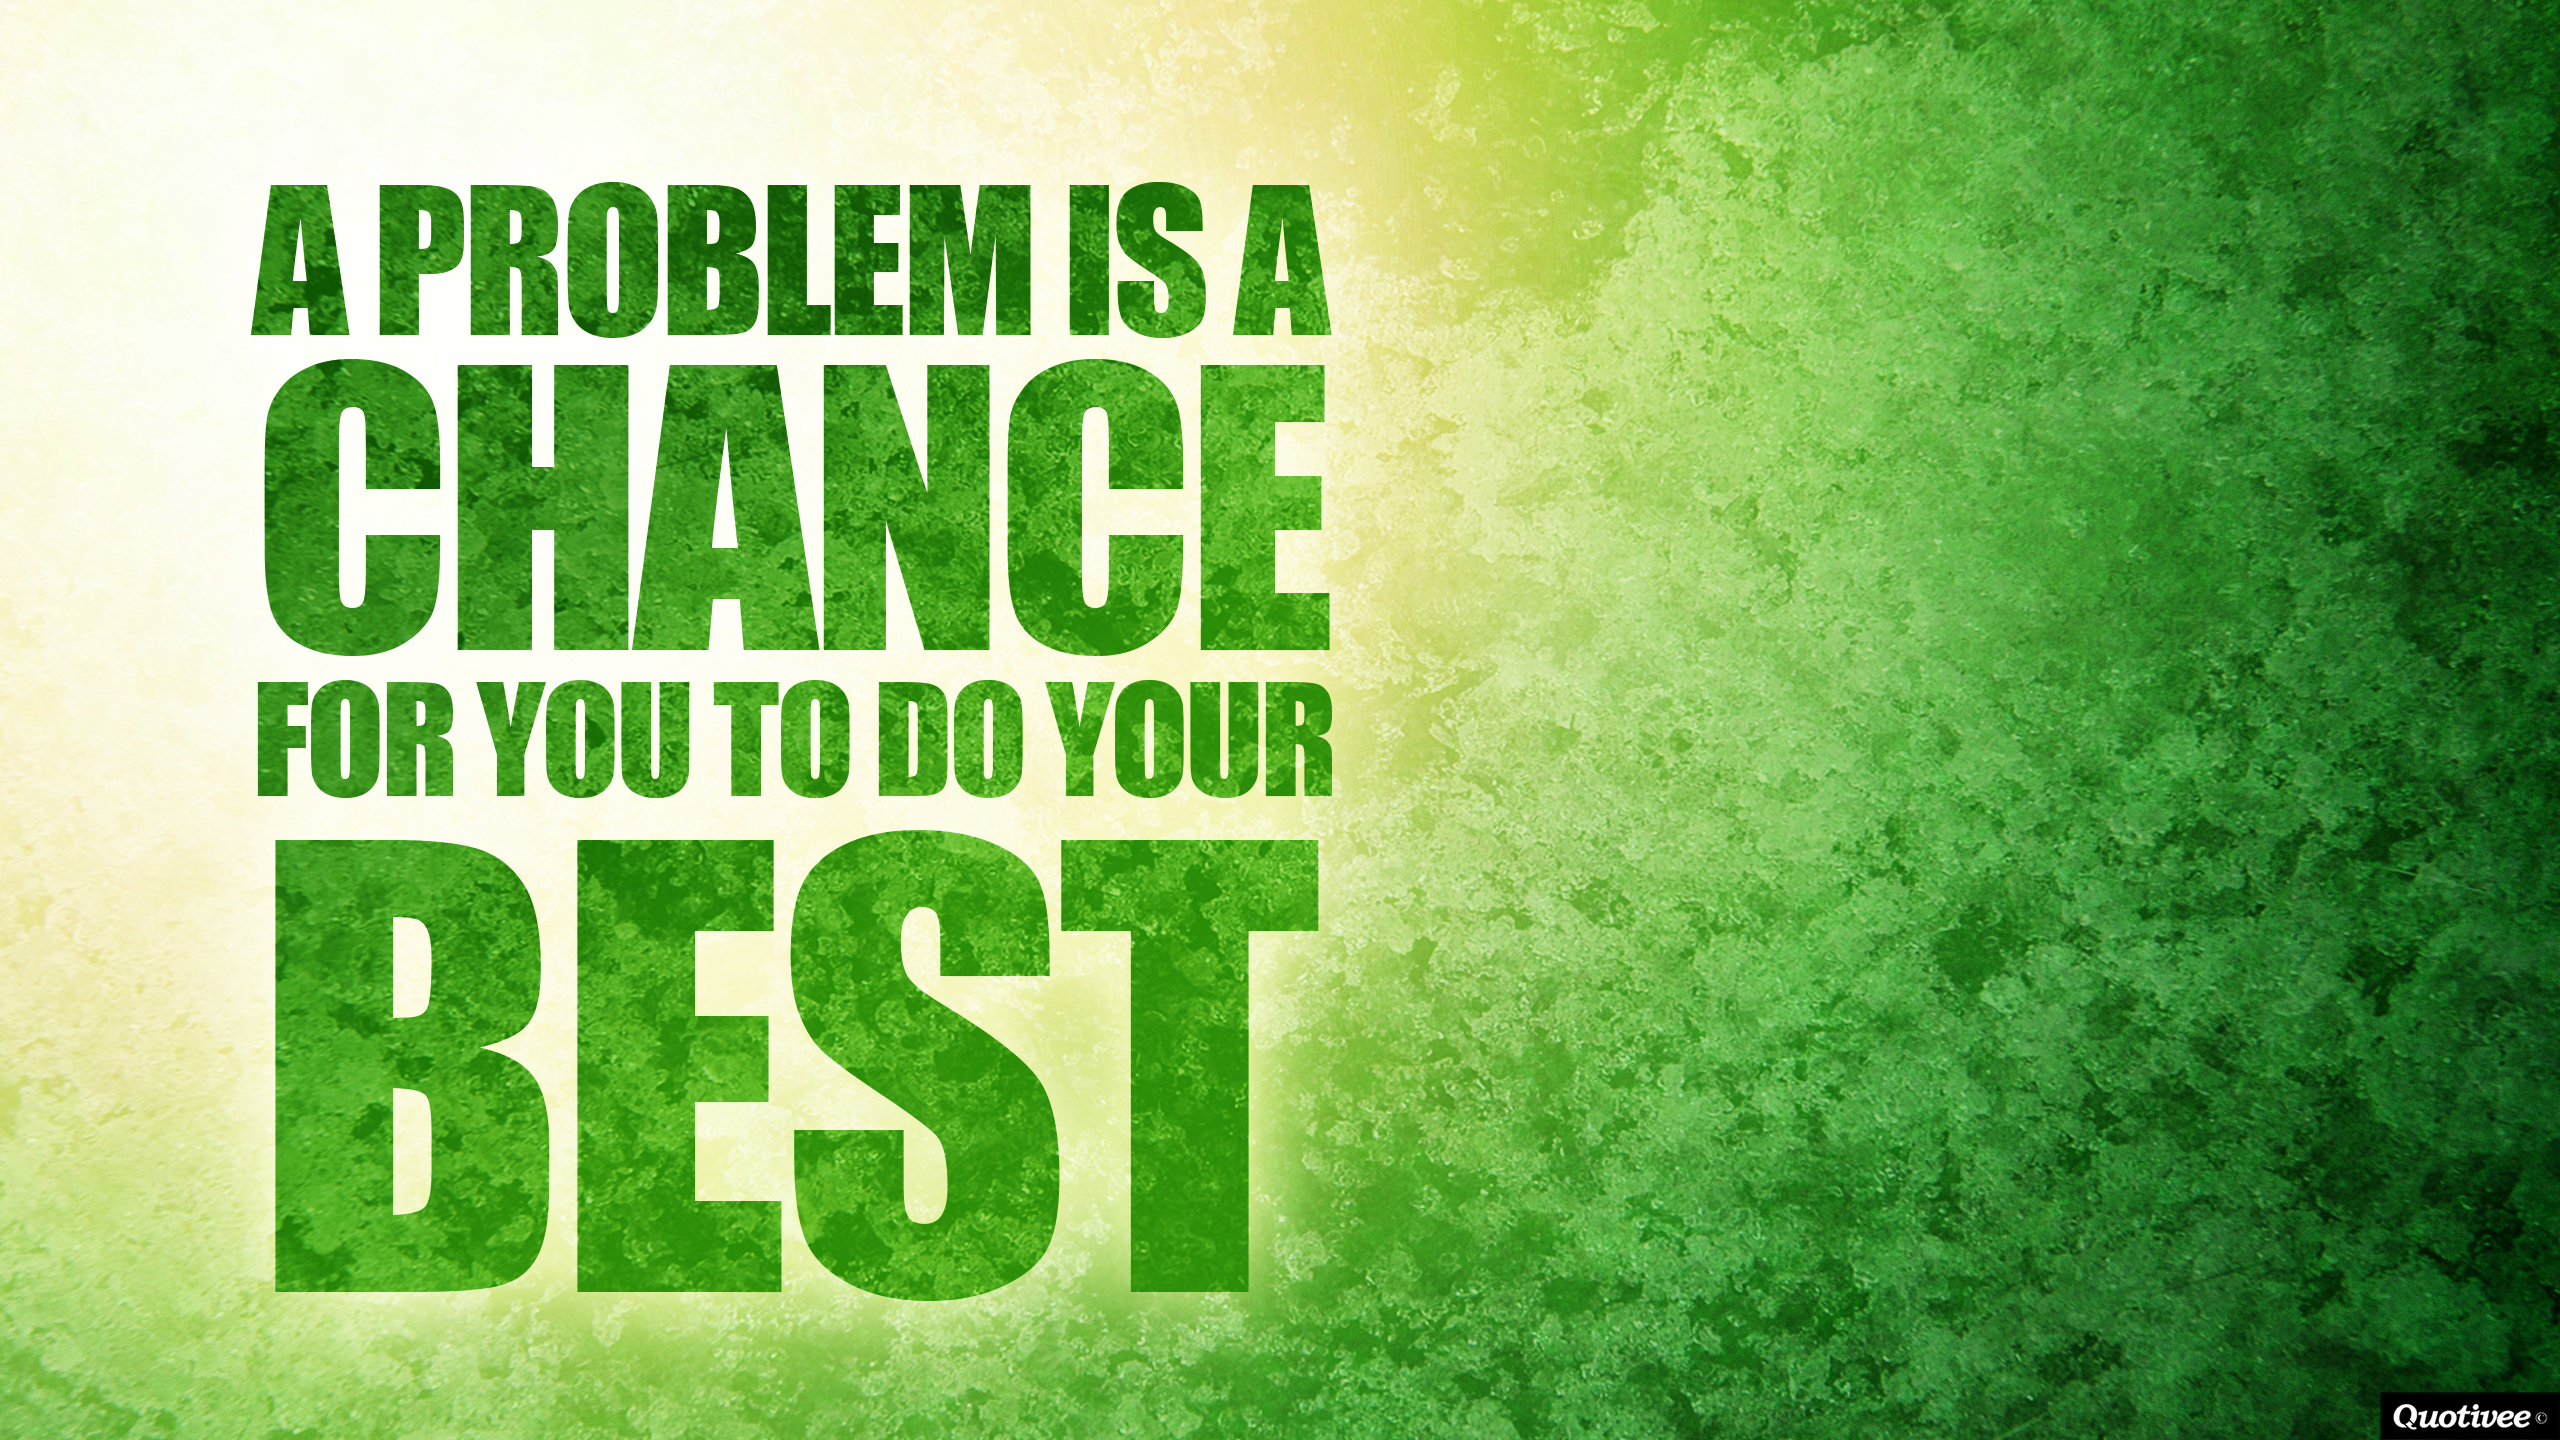 Do Your Best Quotes wallpaper   1303601 2560x1440